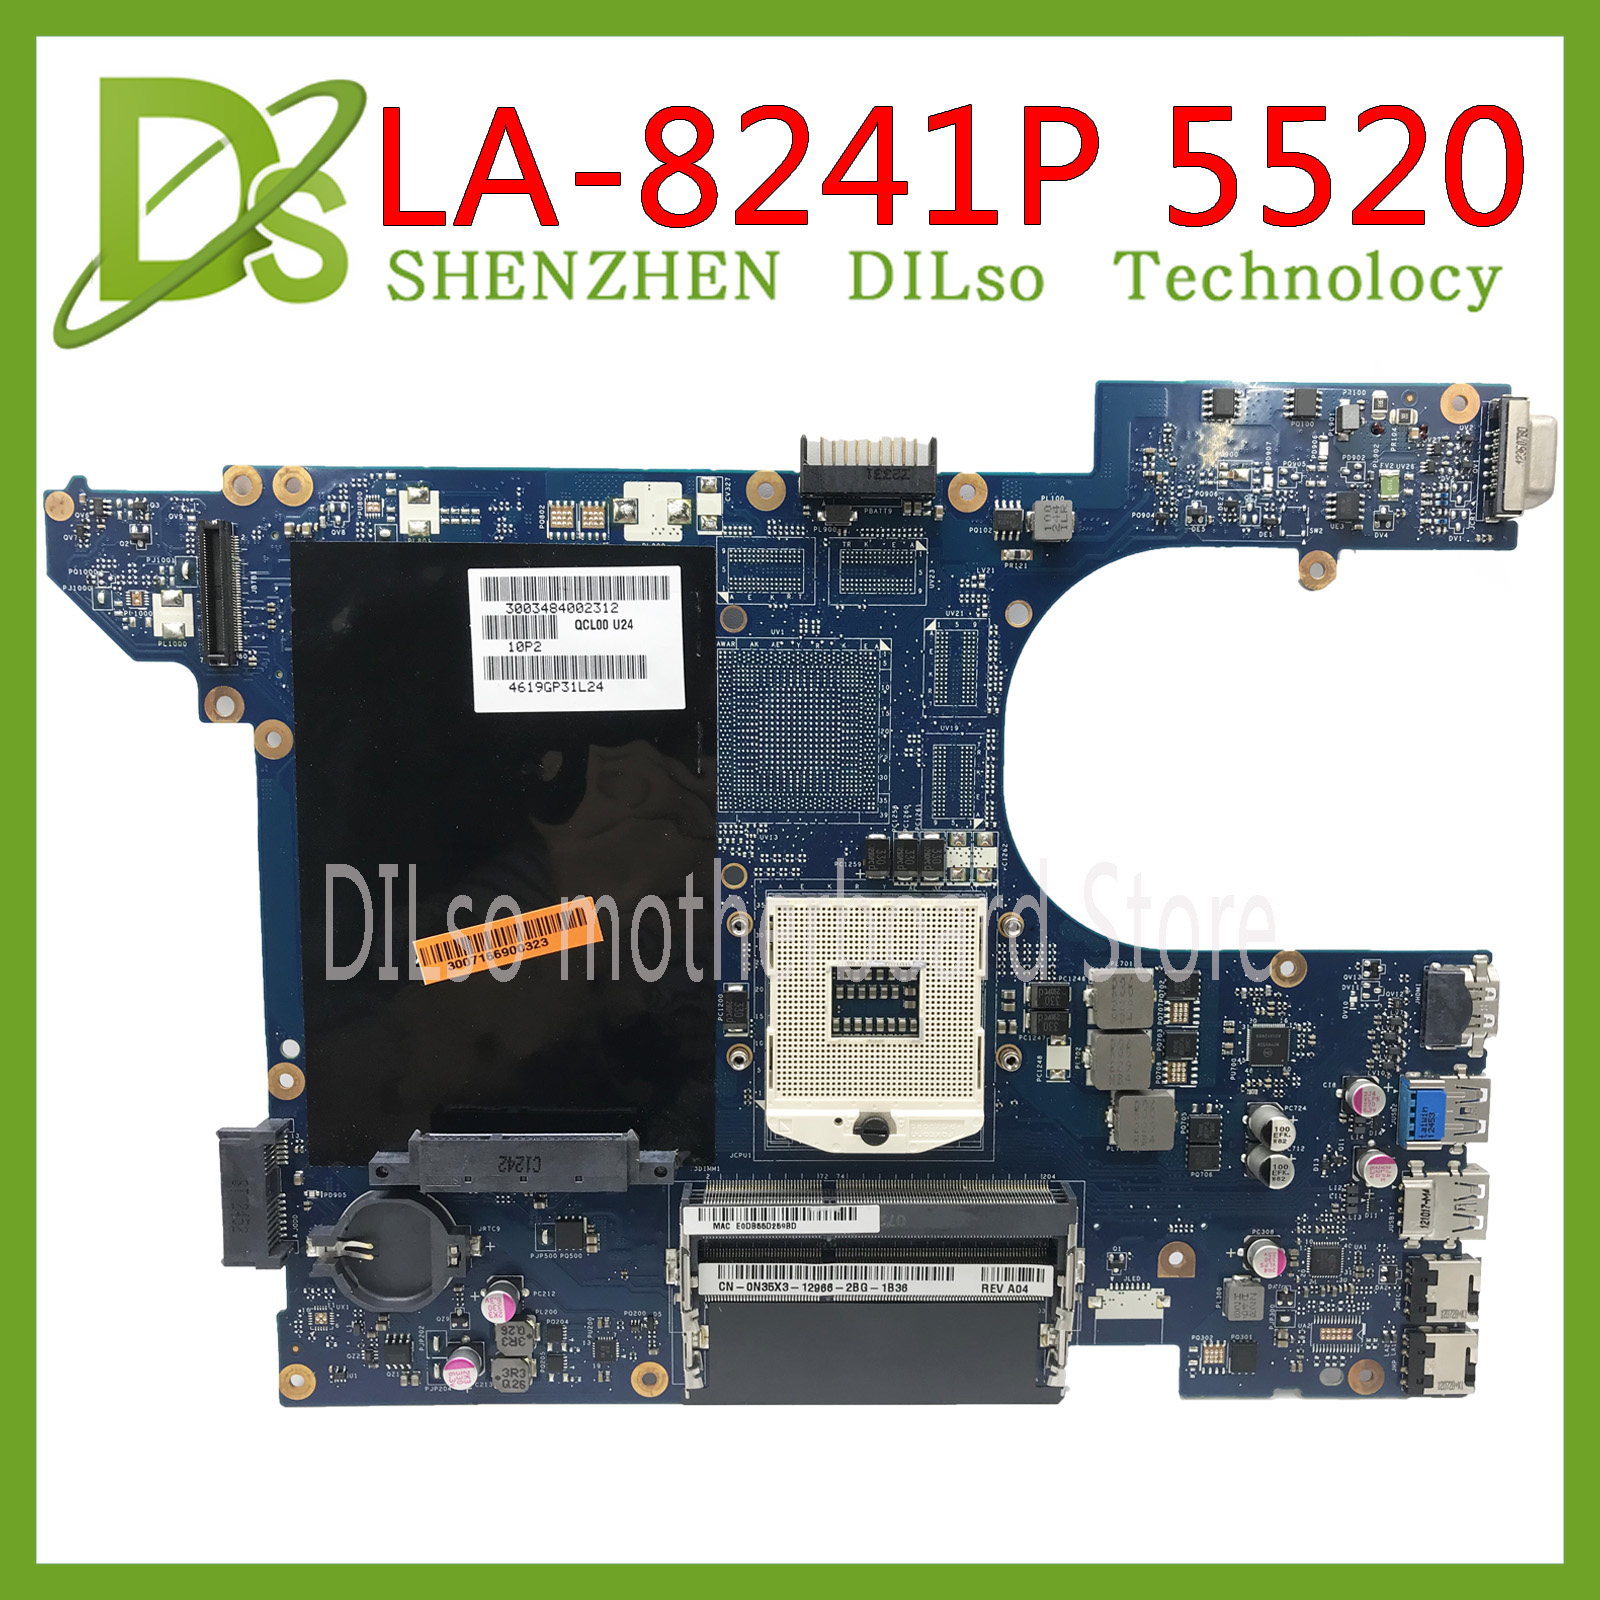 KEFU QCL00 LA-8241P Motherboar For Dell Inspiron 15R 5520 7520 Laptop Motherboard 5520 Original Motherboard Tested 100% Work